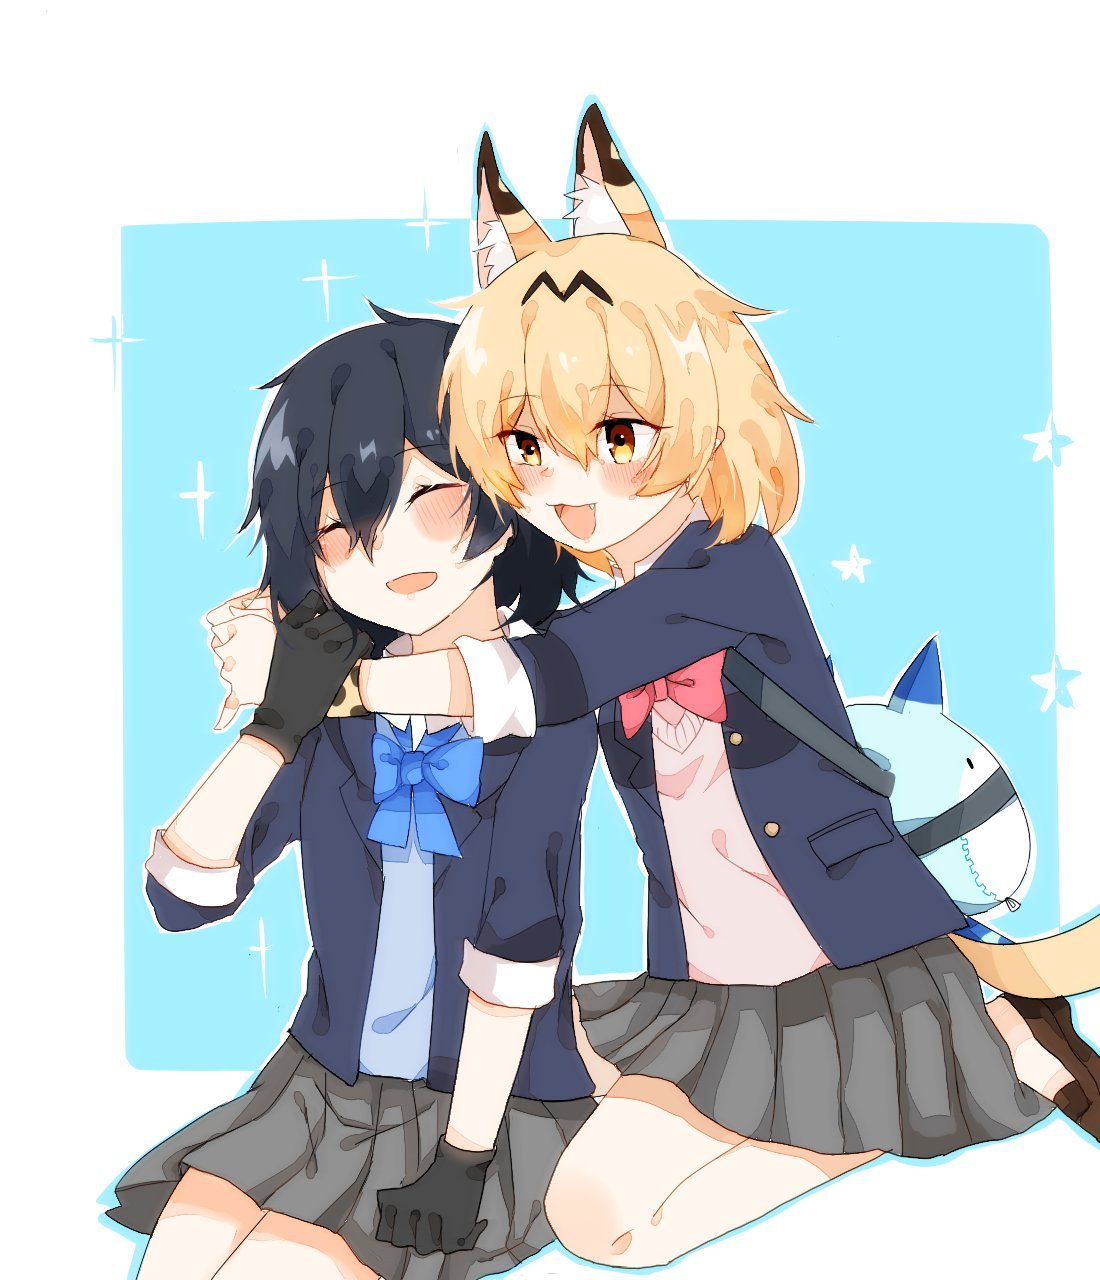 2girls :3 alternate_costume animal_ear_fluff animal_ears bare_legs black_gloves blonde_hair blue_neckwear blue_sweater blush bow bowtie closed_eyes commentary_request extra_ears eyebrows_visible_through_hair fang gloves grey_skirt highres hug jacket kaban_(kemono_friends) kemono_friends loafers lucky_beast_(kemono_friends) luki1192759520 multiple_girls navy_blue_jacket no_hat no_headwear open_mouth pink_sweater pleated_skirt red_neckwear school_uniform serval_(kemono_friends) serval_ears serval_tail shoes short_hair short_sleeves sitting skirt sweater tail yellow_eyes